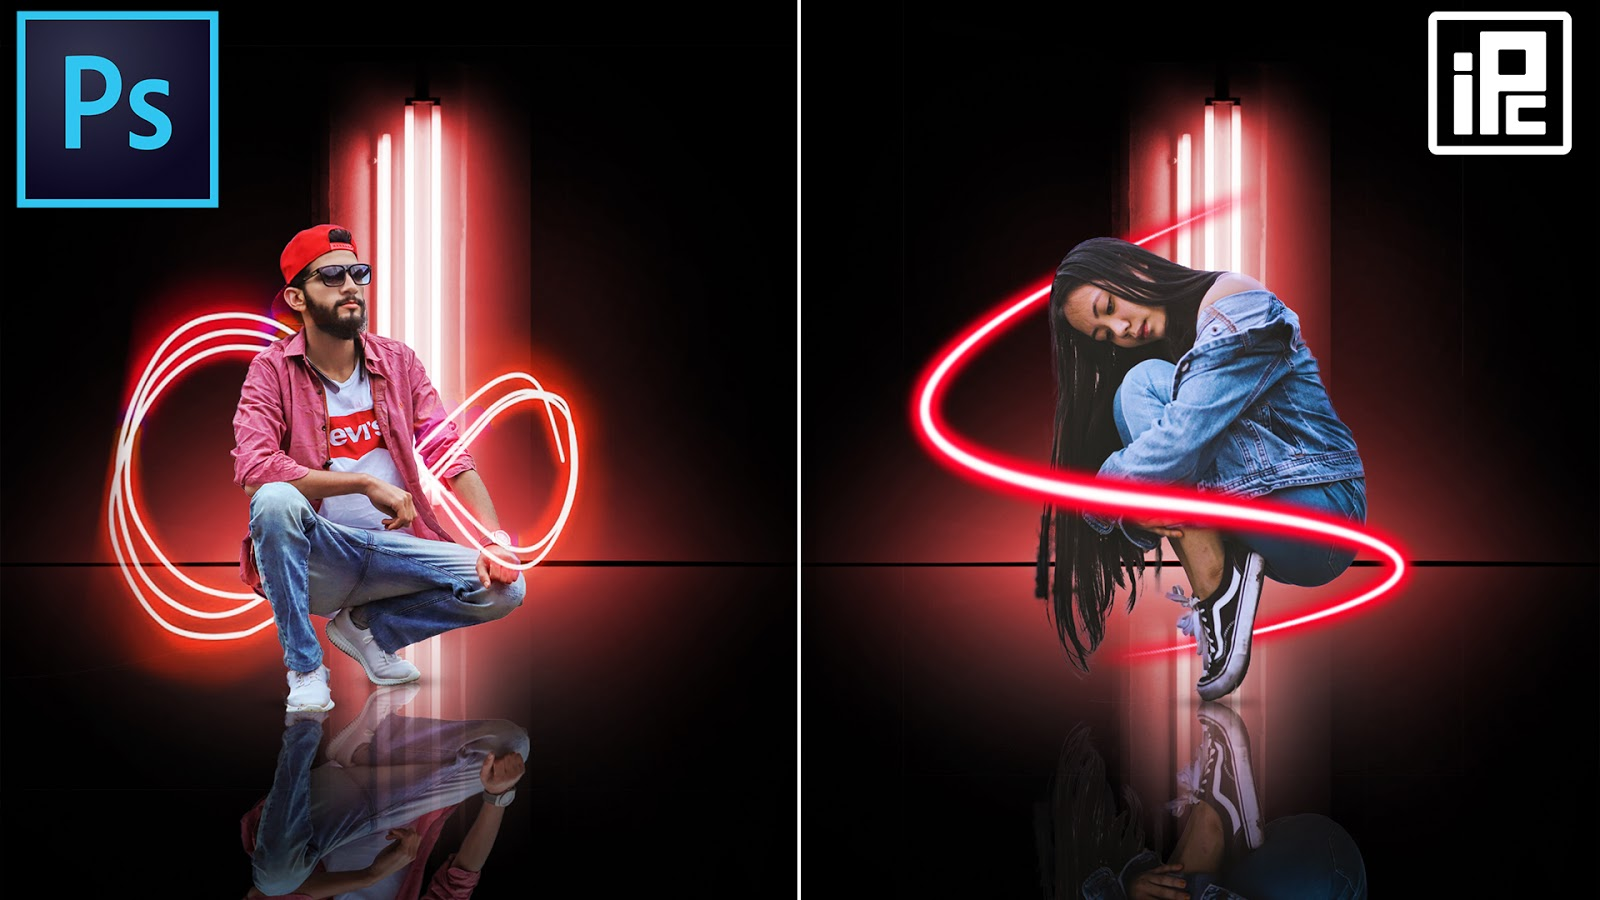 How to create neon light effect image editing in photoshop cc 2019, neon light effect image editing, neon light effect image manipulation, neon light effect, neon light, how to edit neon light effect, edit neon light effect, image manipulation, image editing, editing, image editing in photoshop, photo editing, photo editing in photoshop cc 2019, photoshop, photoshop cc 2019, edit photo with neon light effect, illphocorphics, illphocorphics image editing, image editing, illphocoprhics tutorial,